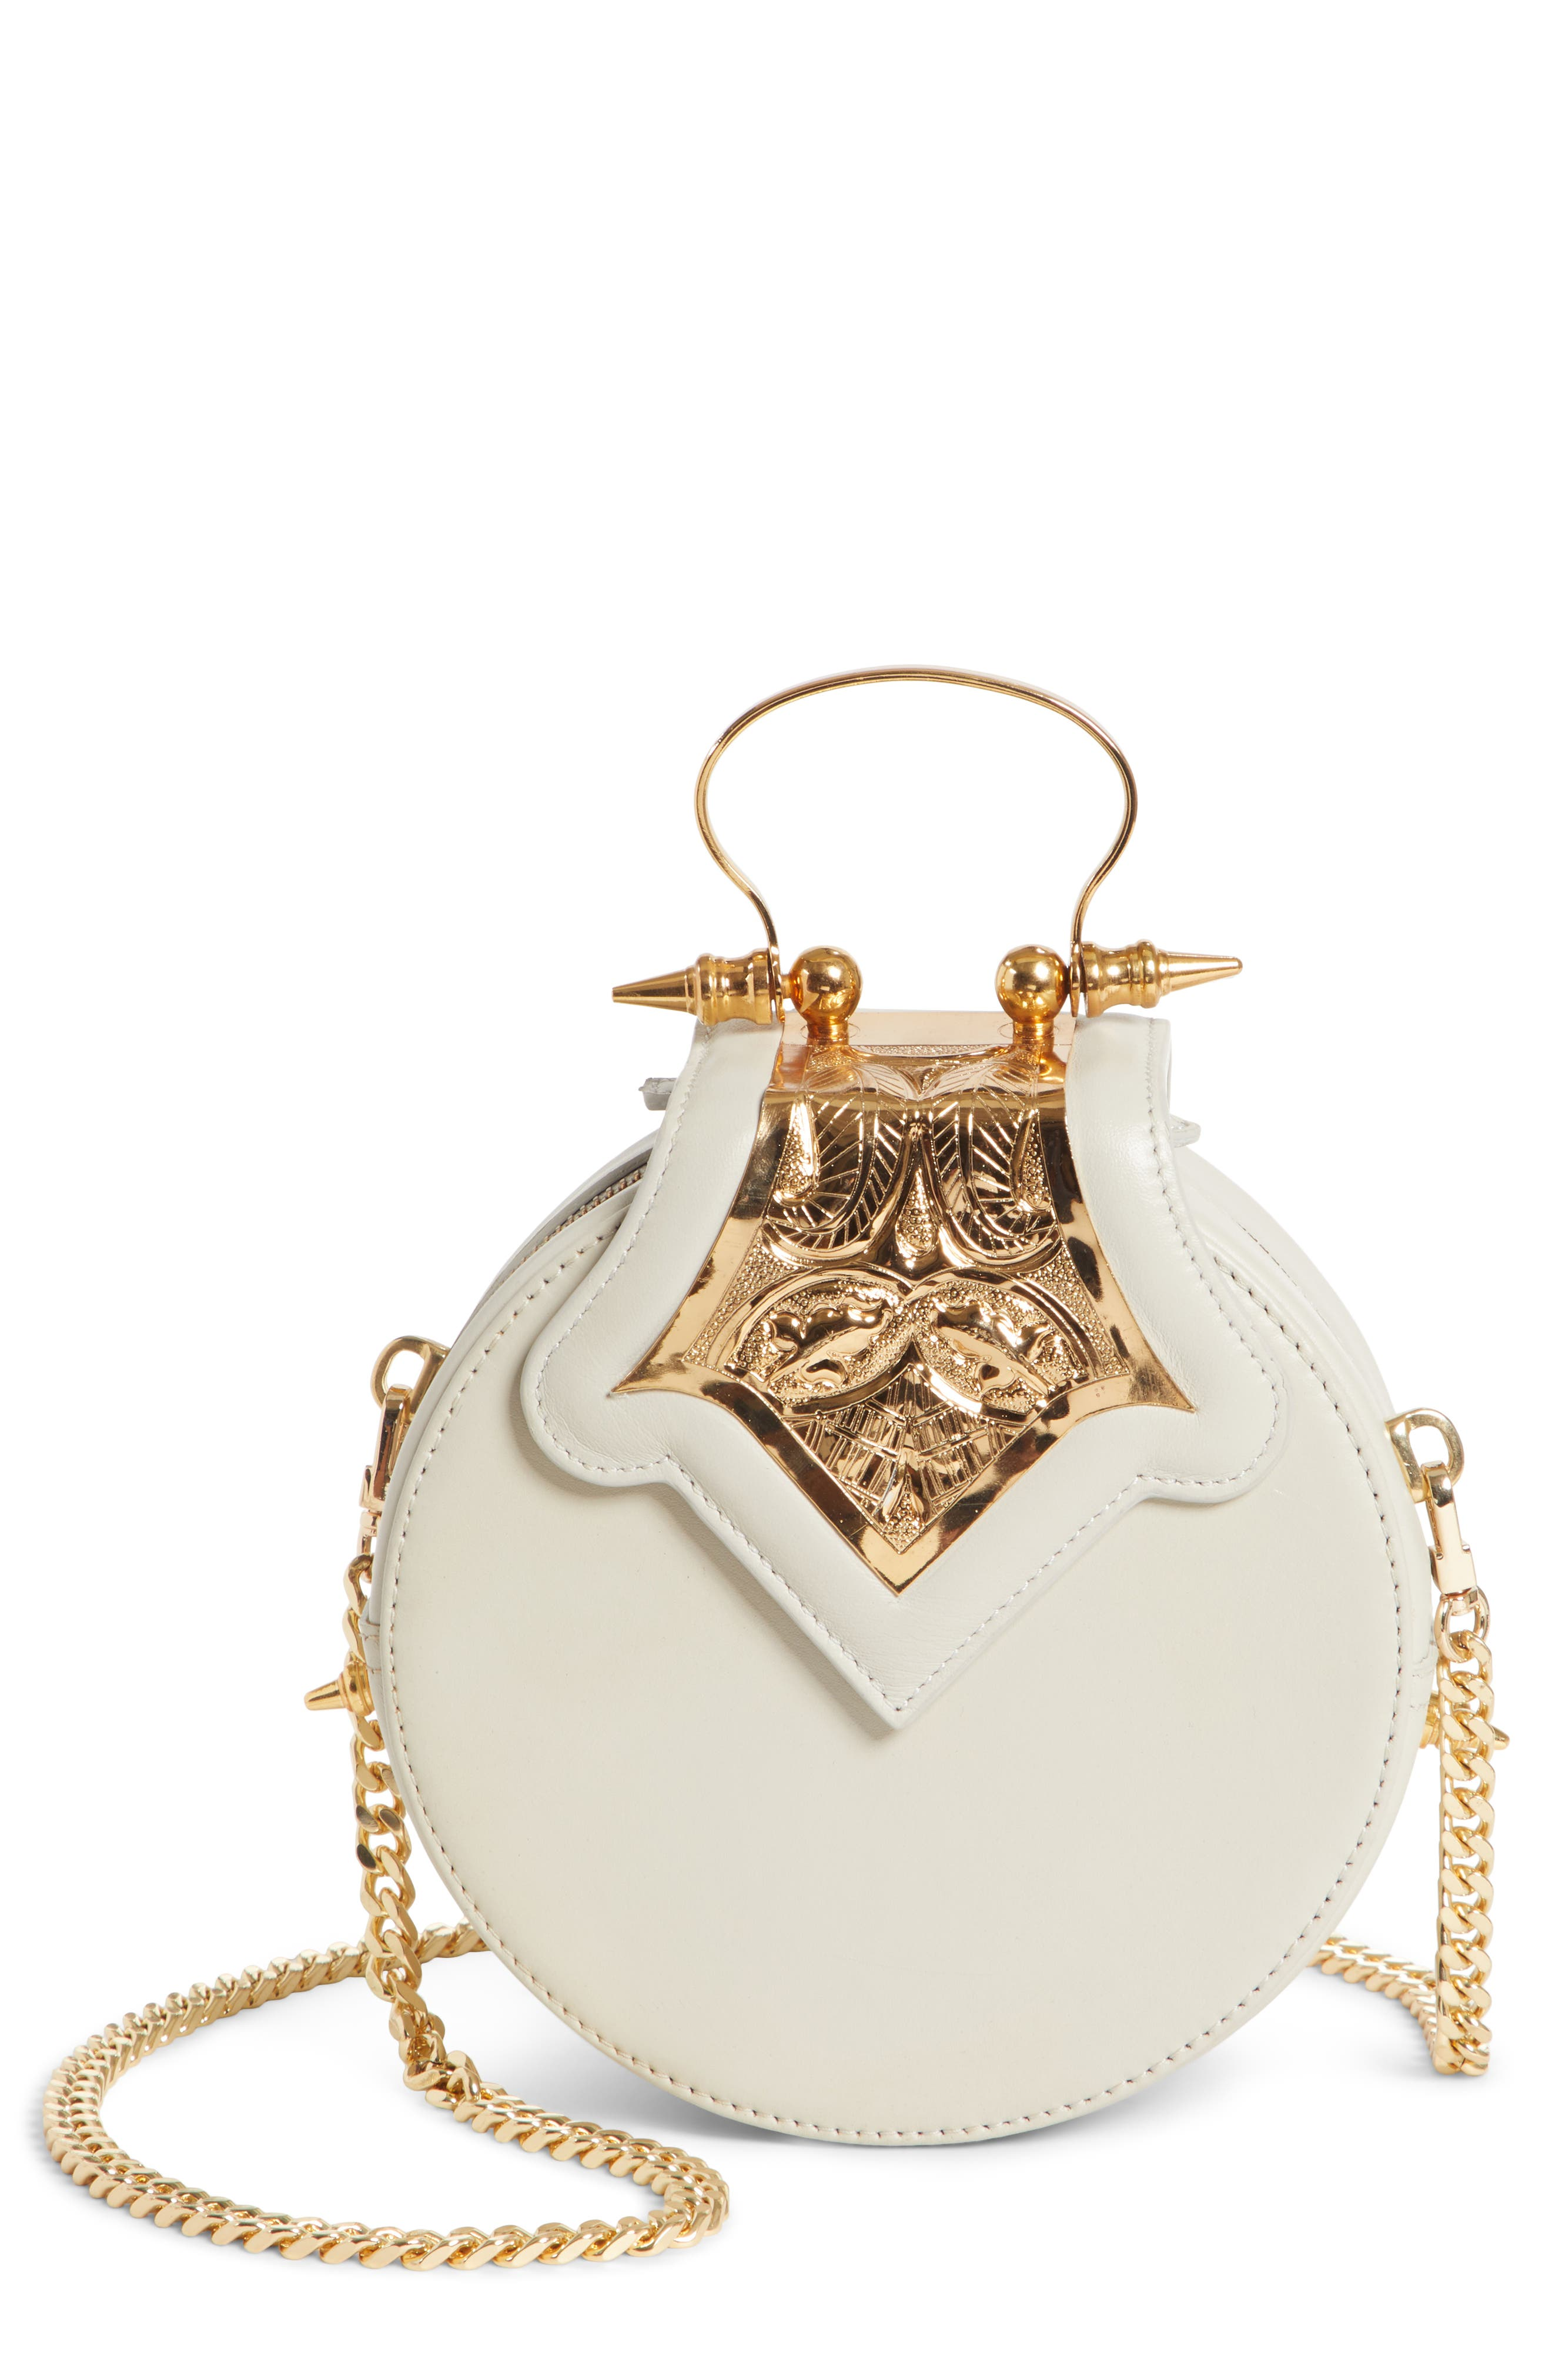 OKHTEIN Mini Dome Crossbody Clutch - White in Ivory X Gold